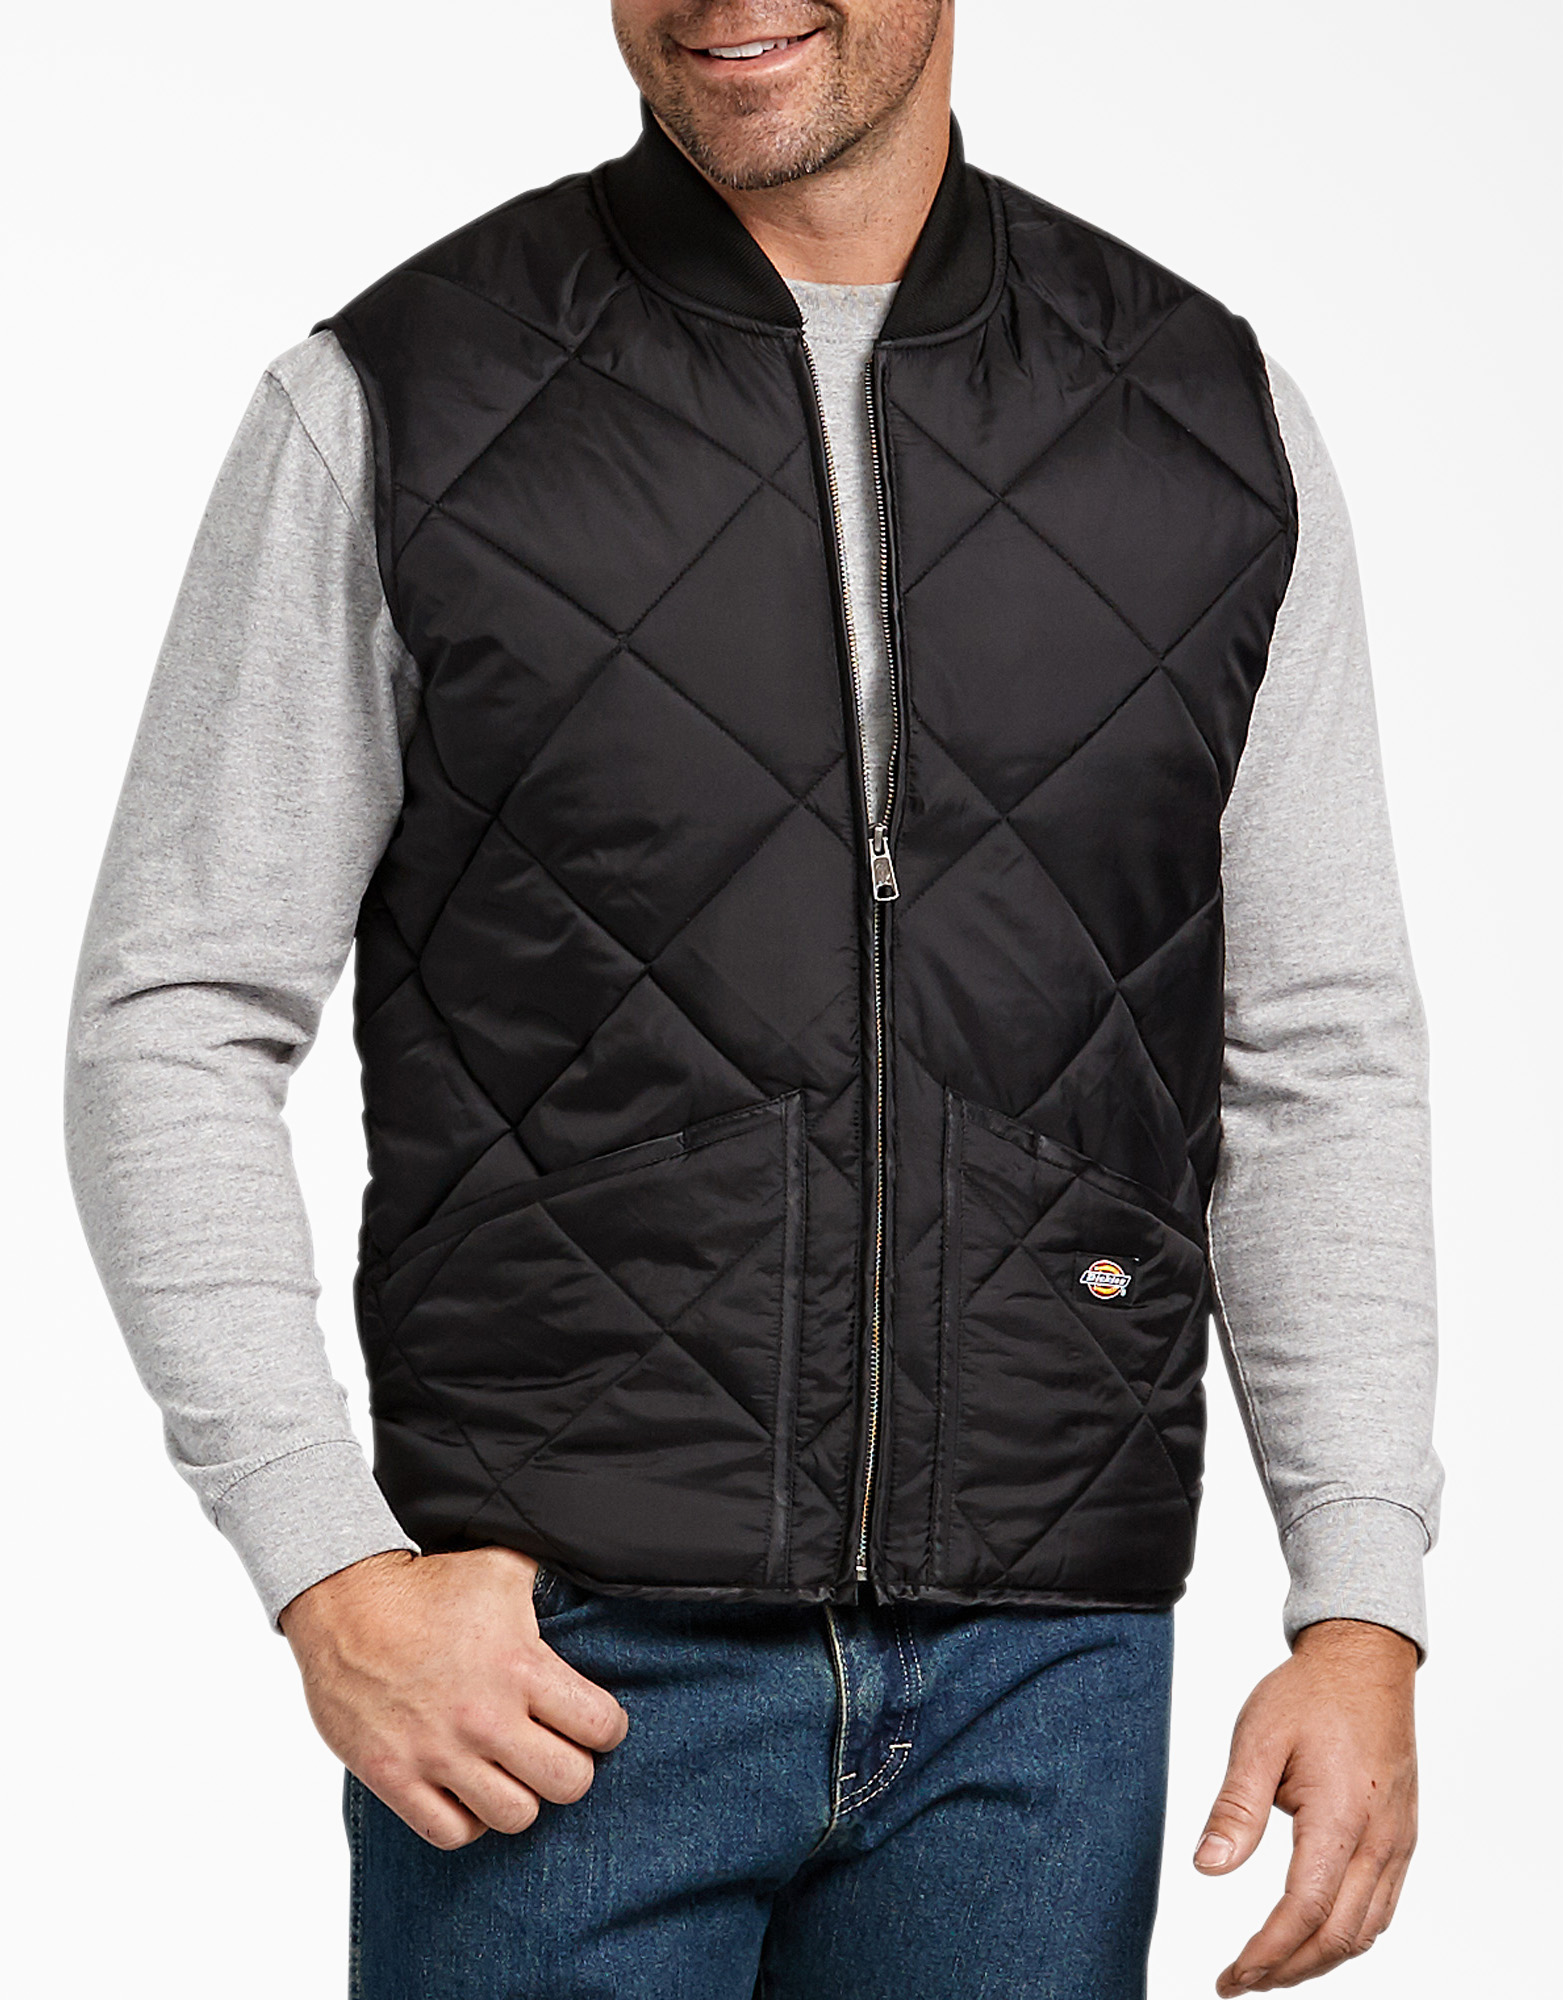 Diamond Quilted Nylon Vest - Black (BK)